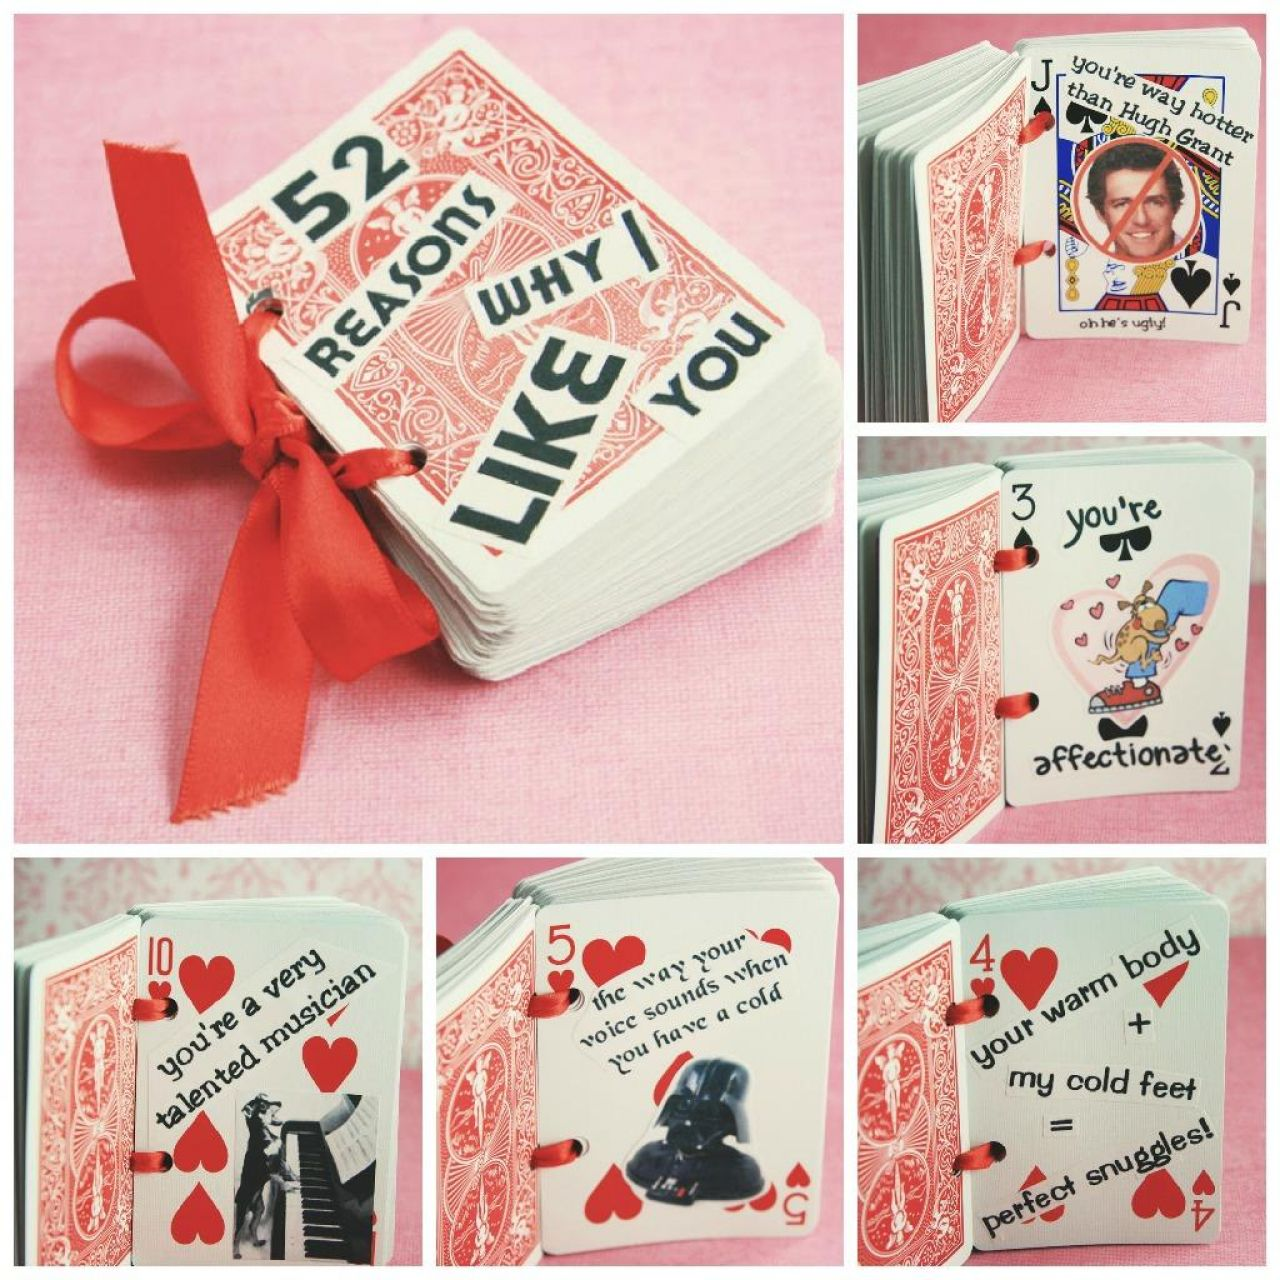 diy-valentines-day-cards-for-him images